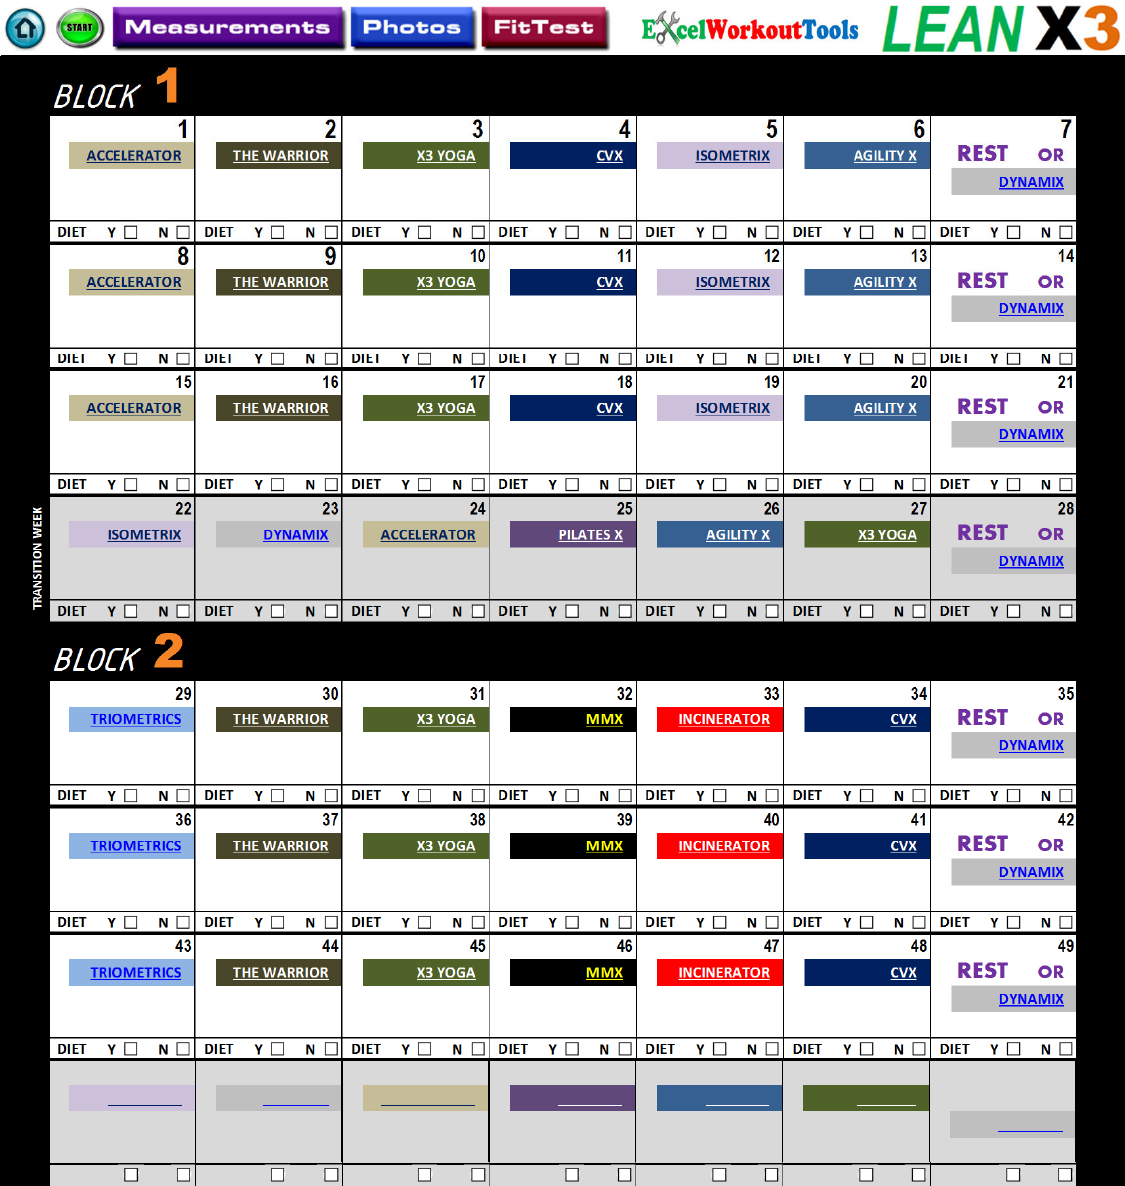 Master Workout Calendar for use with P90X3 - LEAN X3 PDF